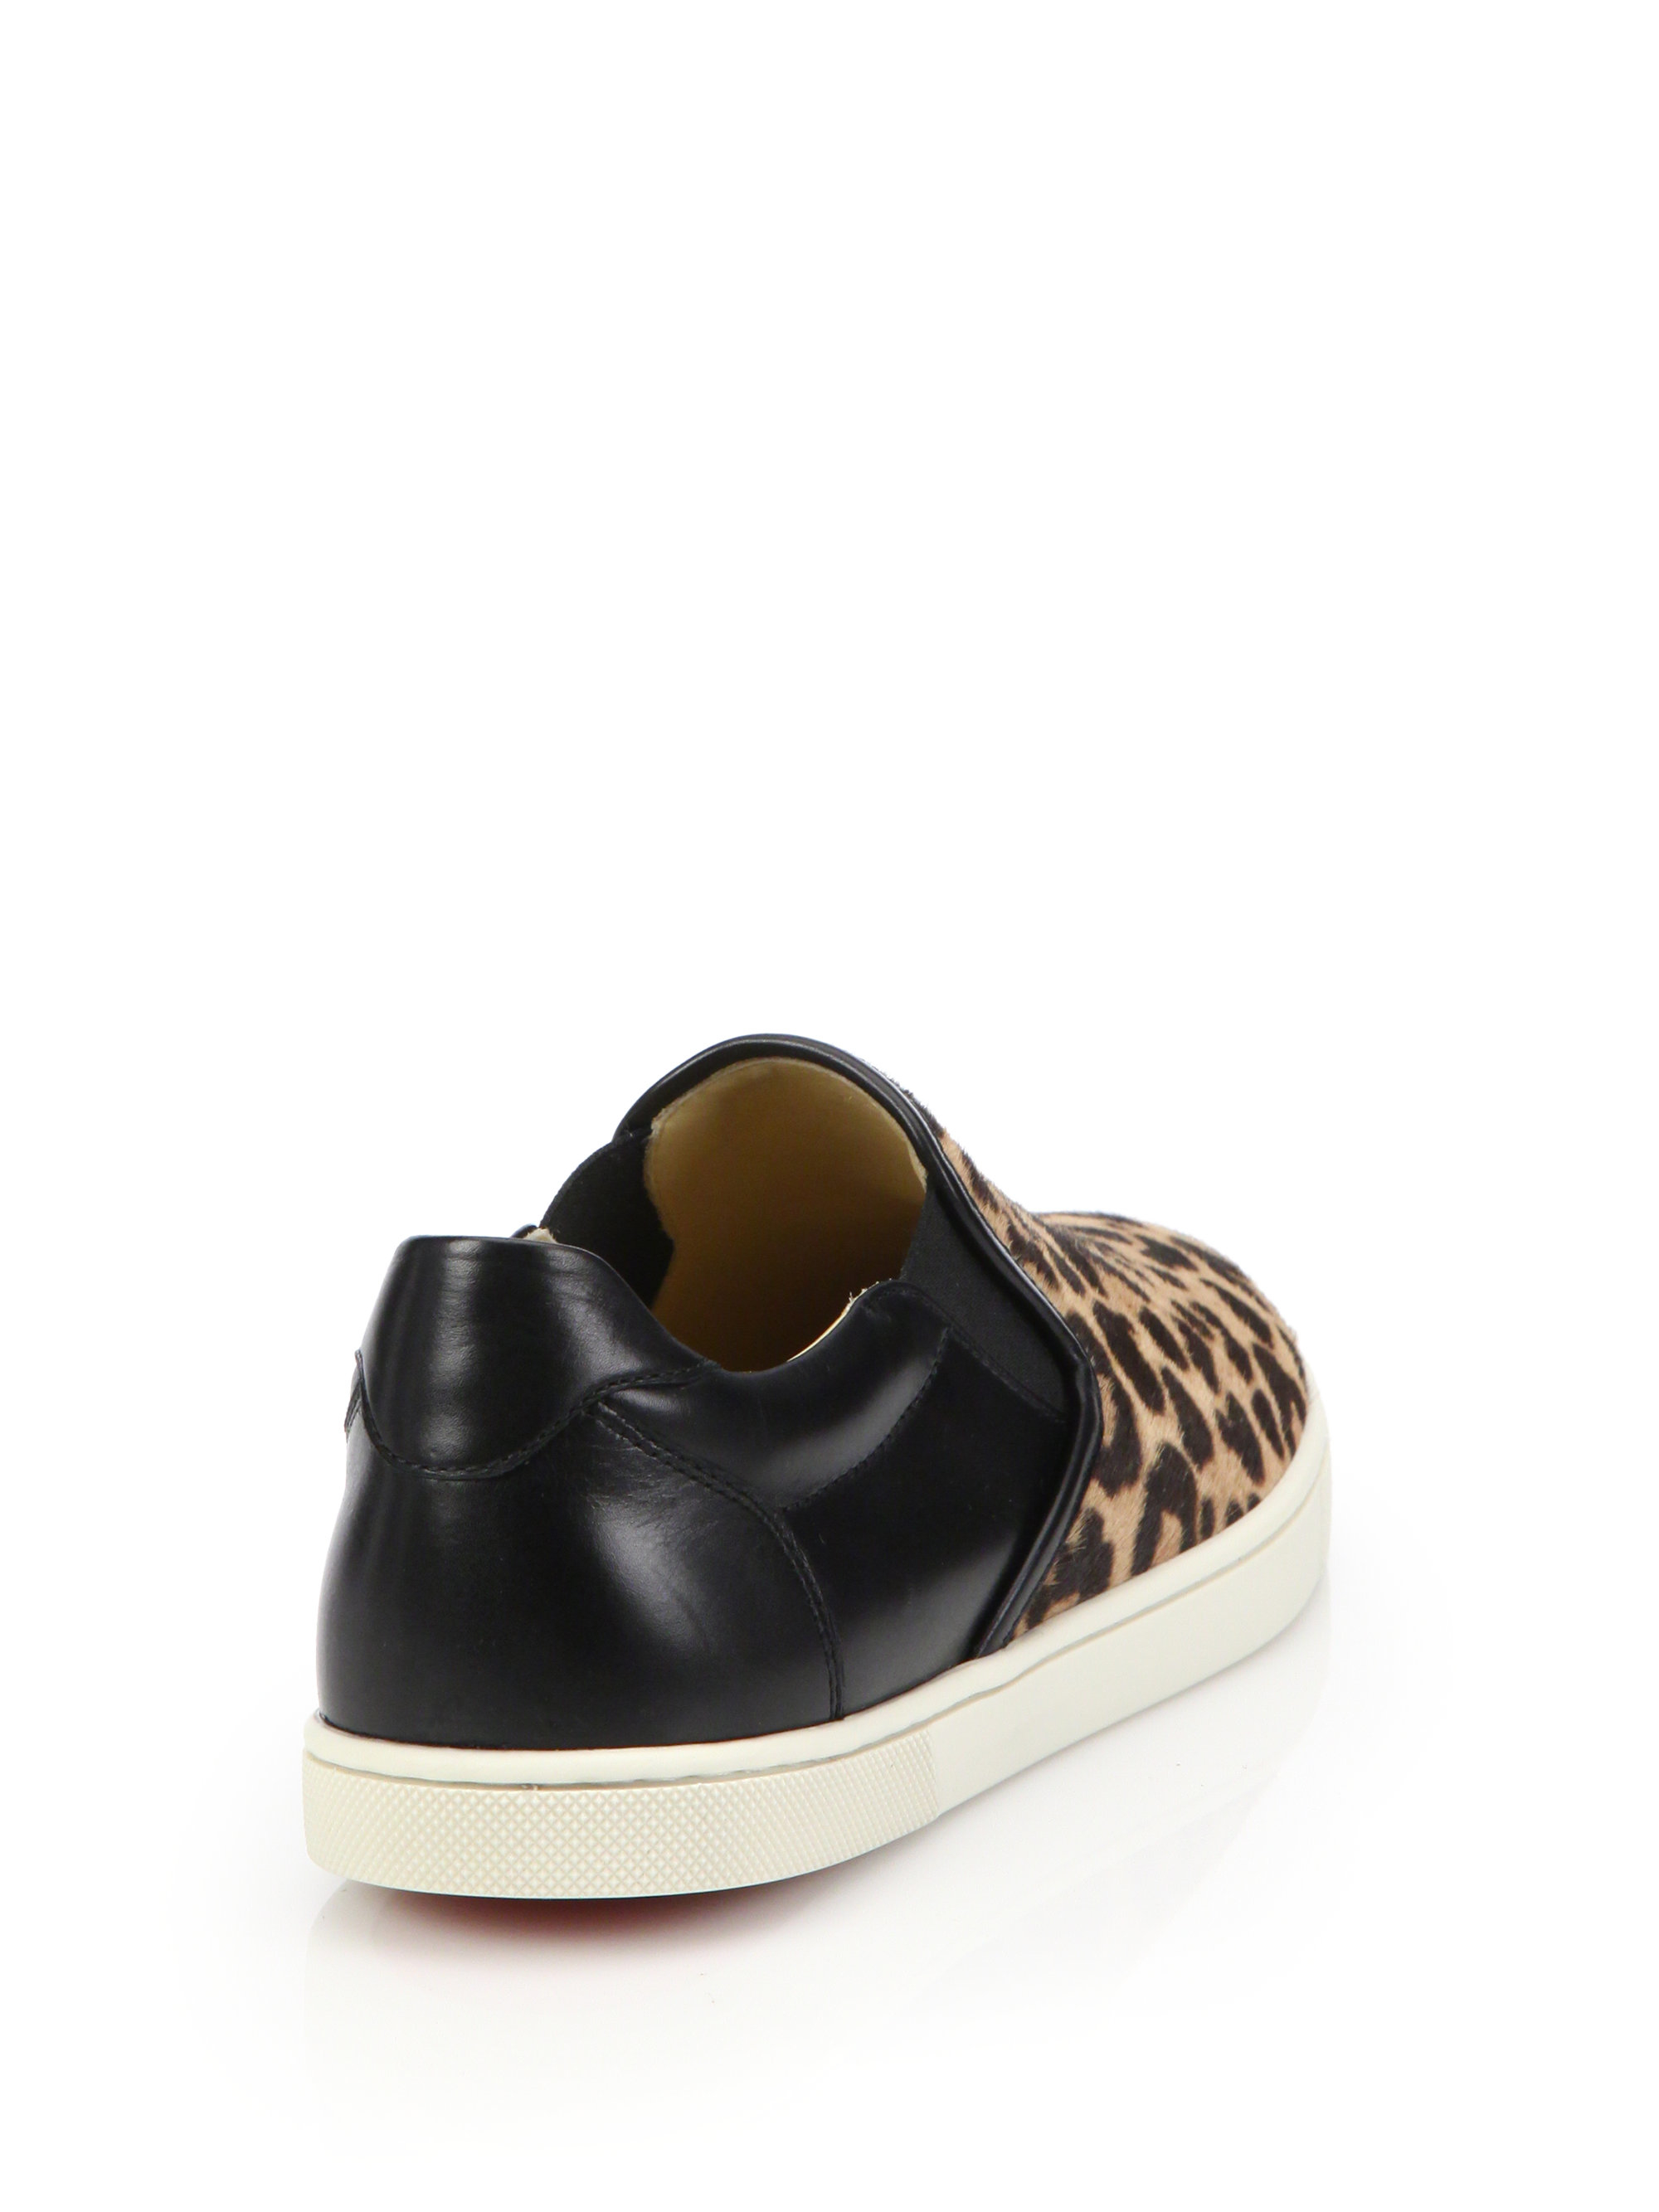 louis vuitton replica mens shoes - Christian louboutin Master Key Leopard-print Calf Hair \u0026amp; Leather ...